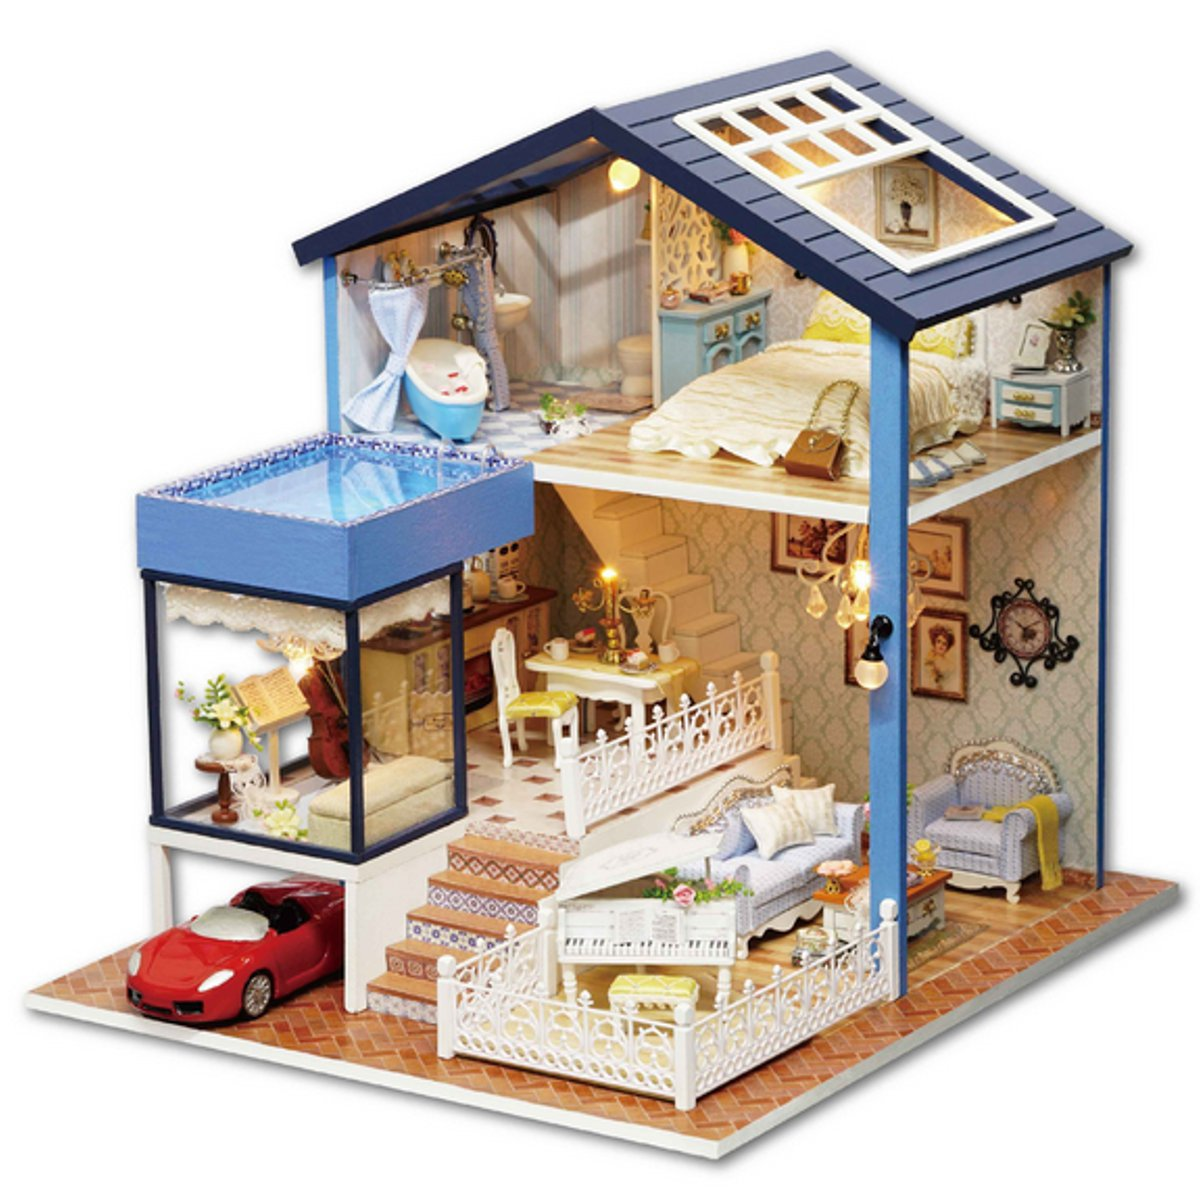 DIY Seattle Cottage Dollhouse Miniature Kit Dolls House With Furniture Gift Fashion Accessories Learning Toy